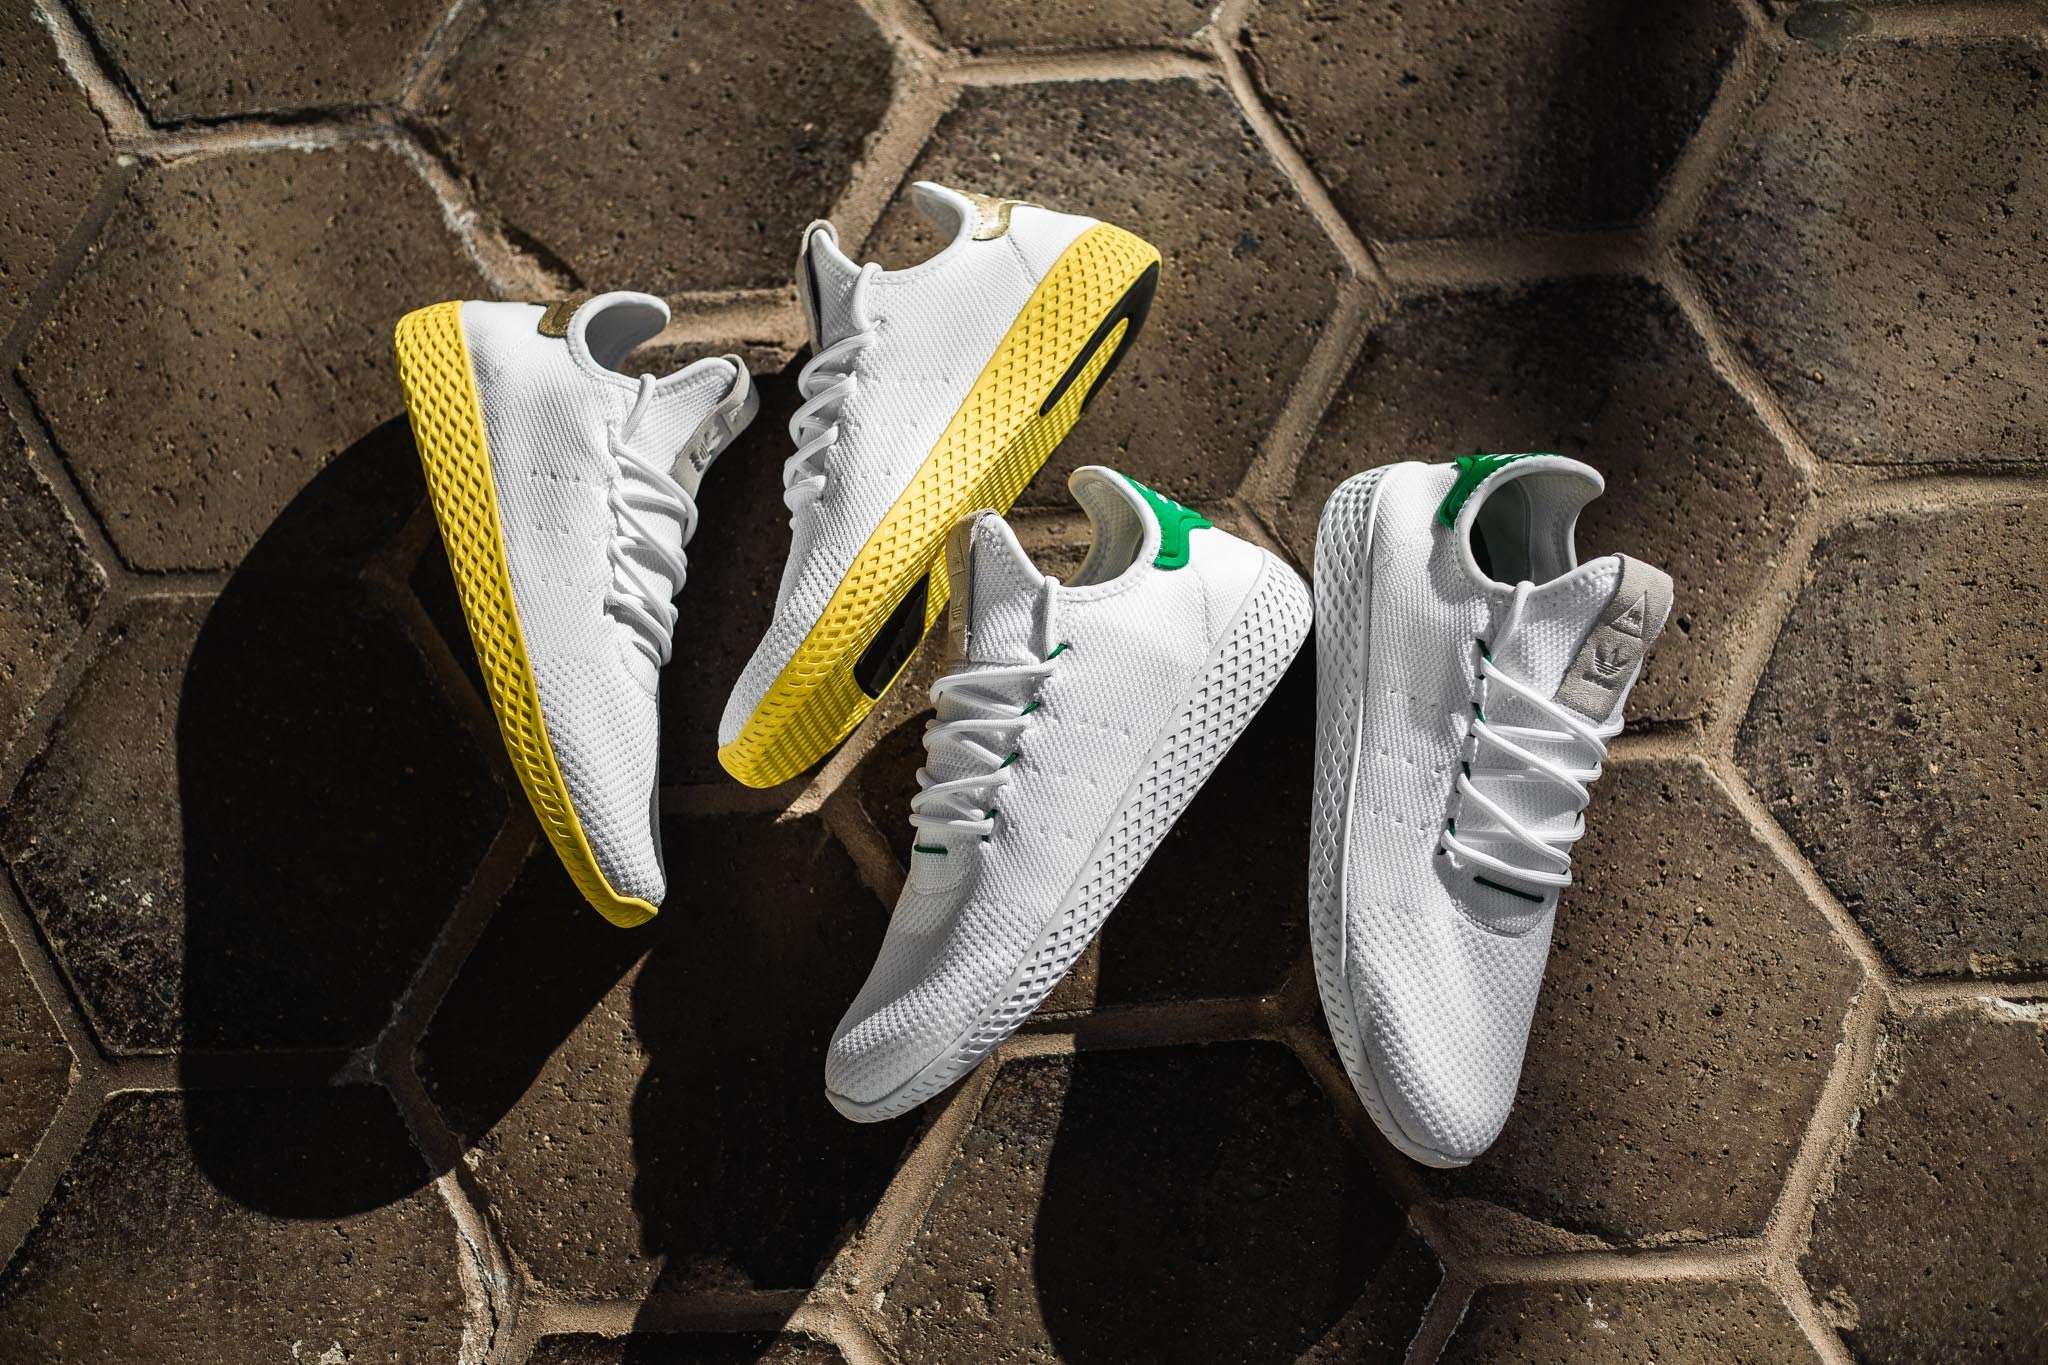 7b5a78f3b21c1 From the forward thinking mind of Skateboard P A.K.A. Pharrell WIlliams  comes the Adidas PW Tennis HU Primeknit. This new sneaker silhouette takes  design ...